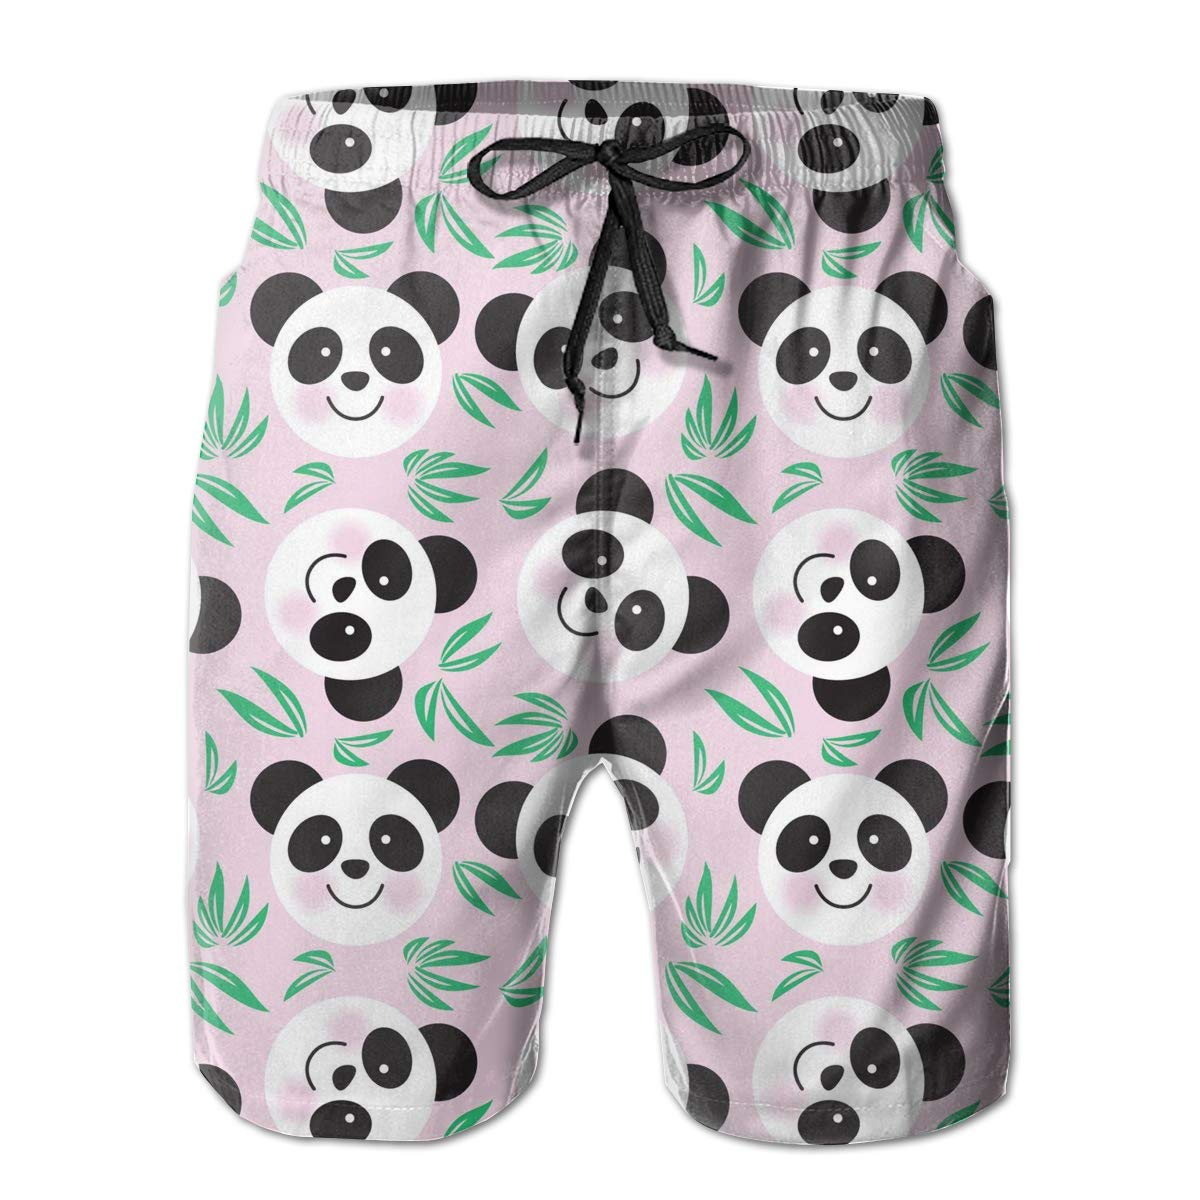 Hateone Life Mens Beach Shorts Quick Dry Pink Panda Summer Holiday Mesh Lining Swimwear Board Shorts with Pockets XXL